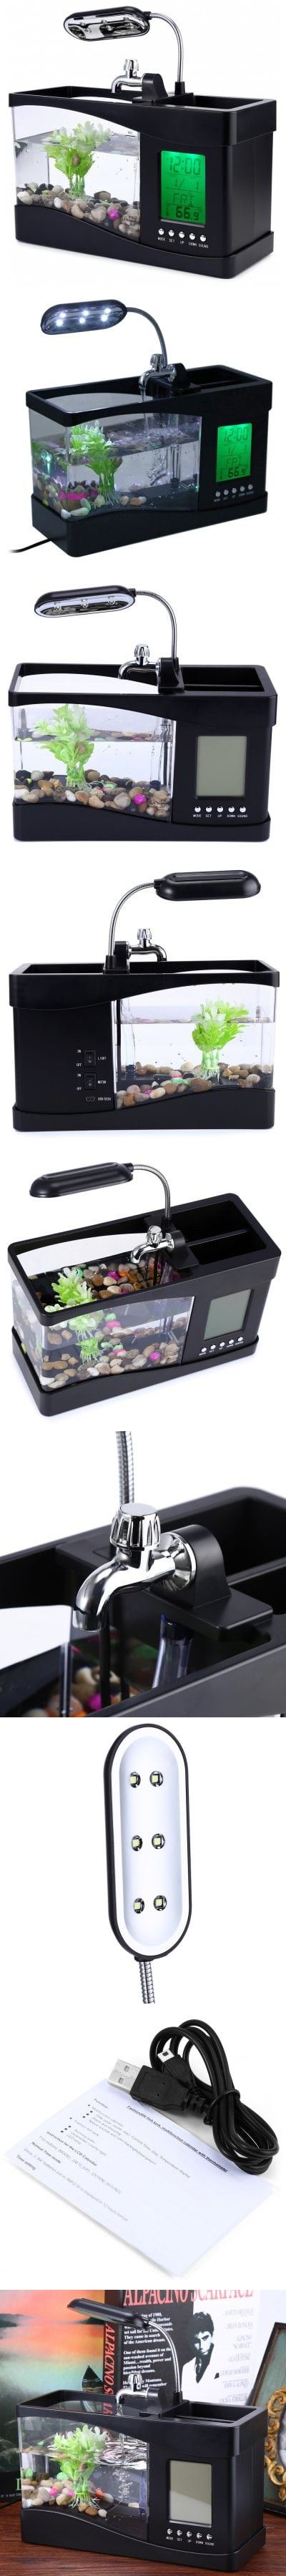 Mini USB LCD Desktop Lamp Fish Tank Light Aquarium LED Clock -$40.36